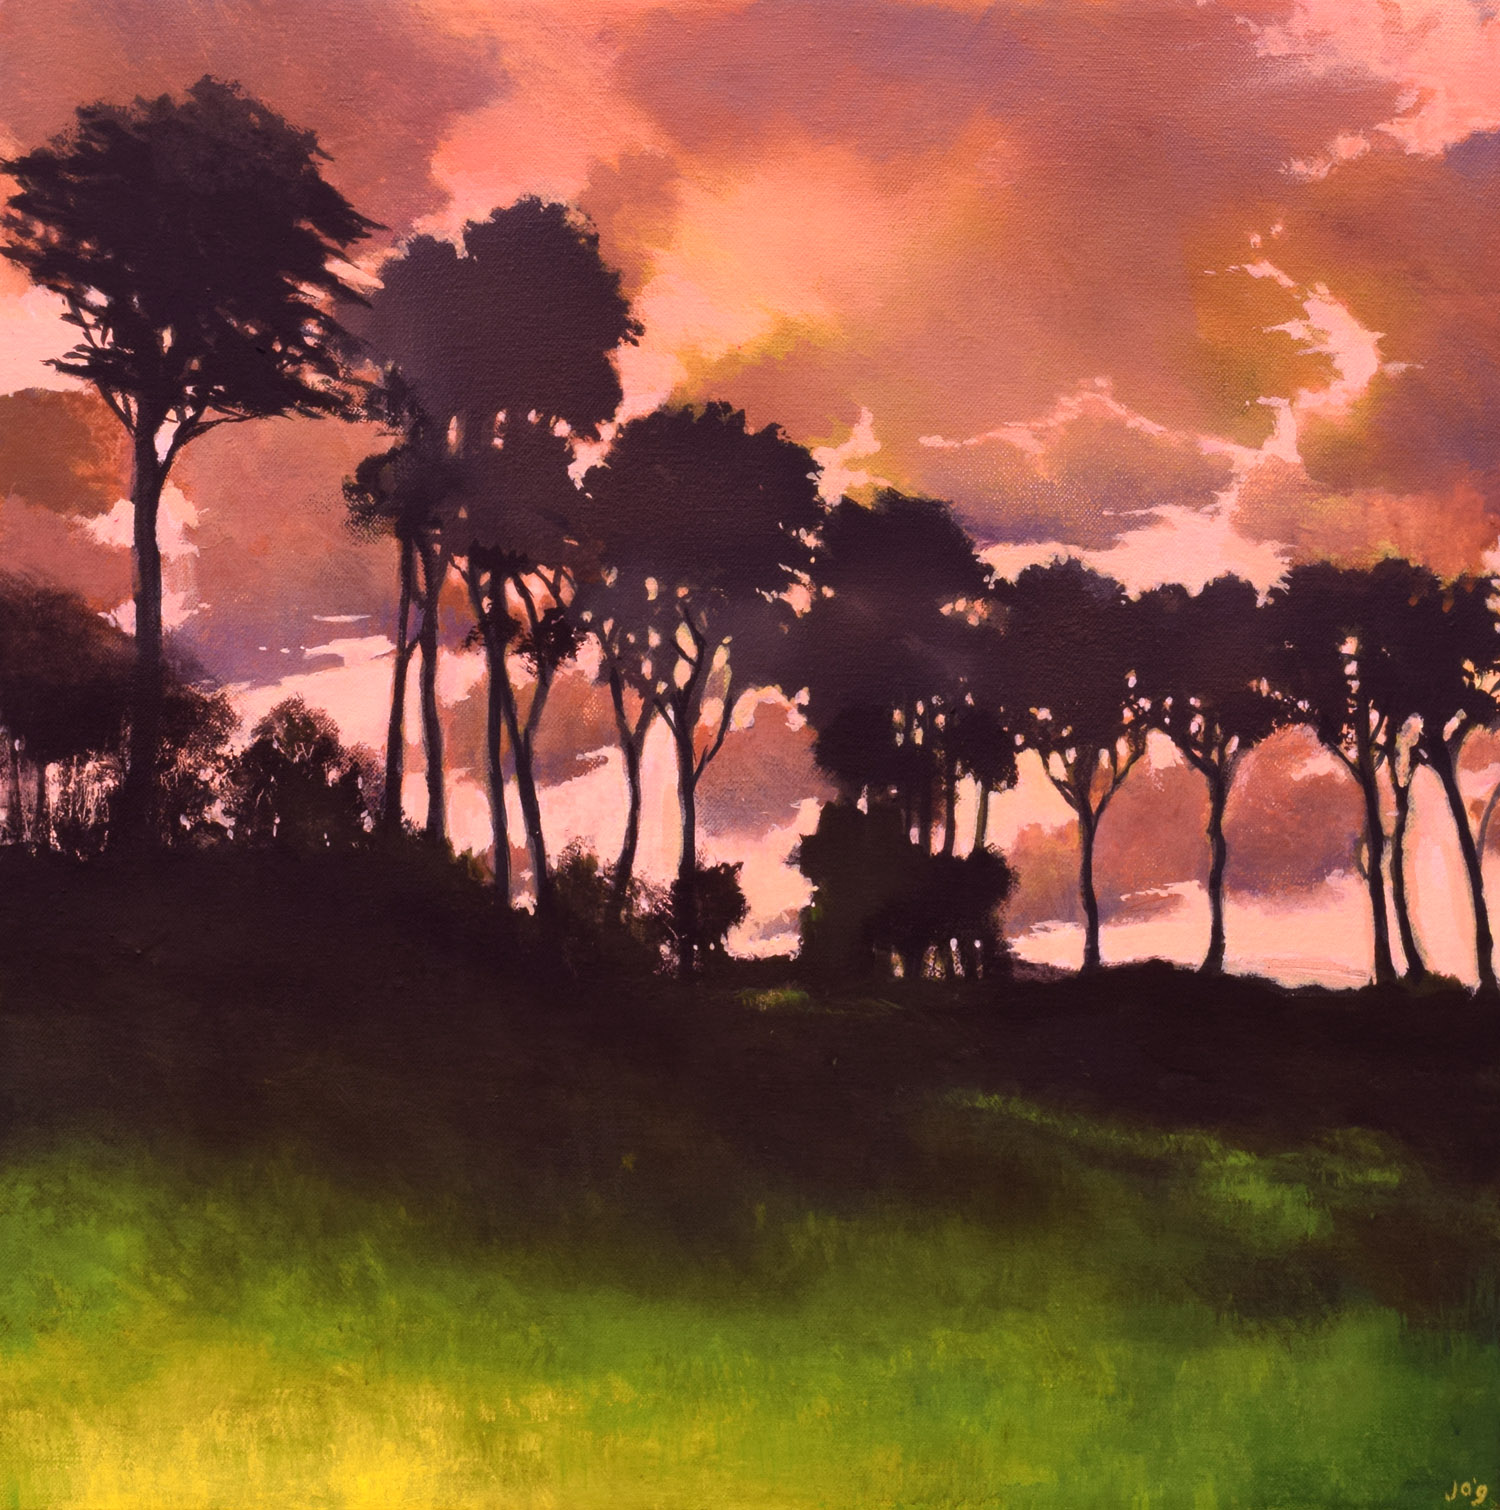 Murmur in the Trees VI by John O'Grady | A sunset on a hot summer day in Provence